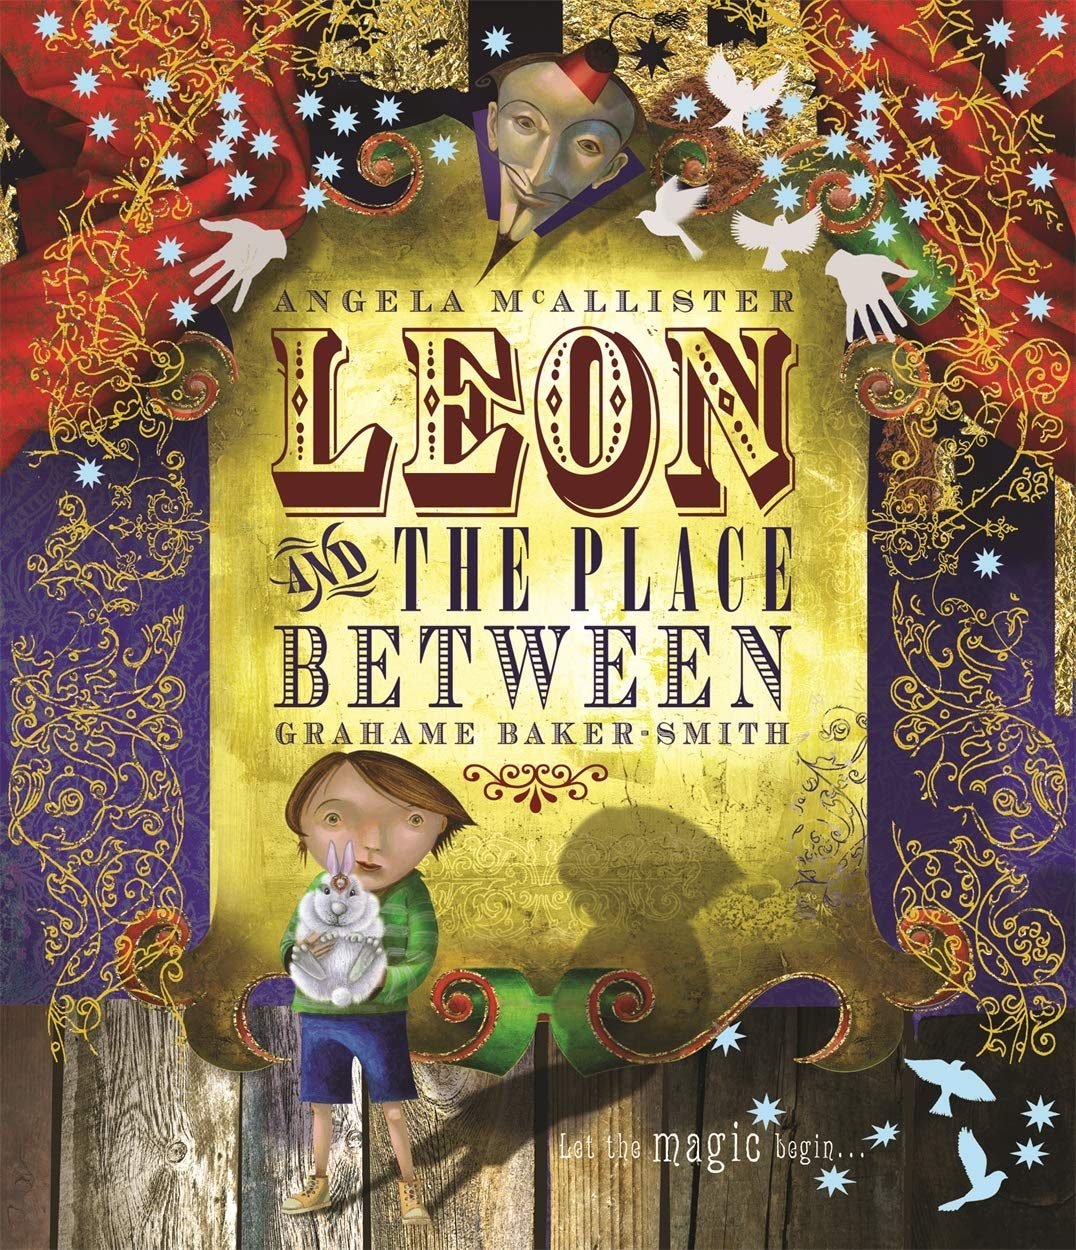 Leon and the Place Between: Amazon.co.uk: Graham Baker-Smith ...